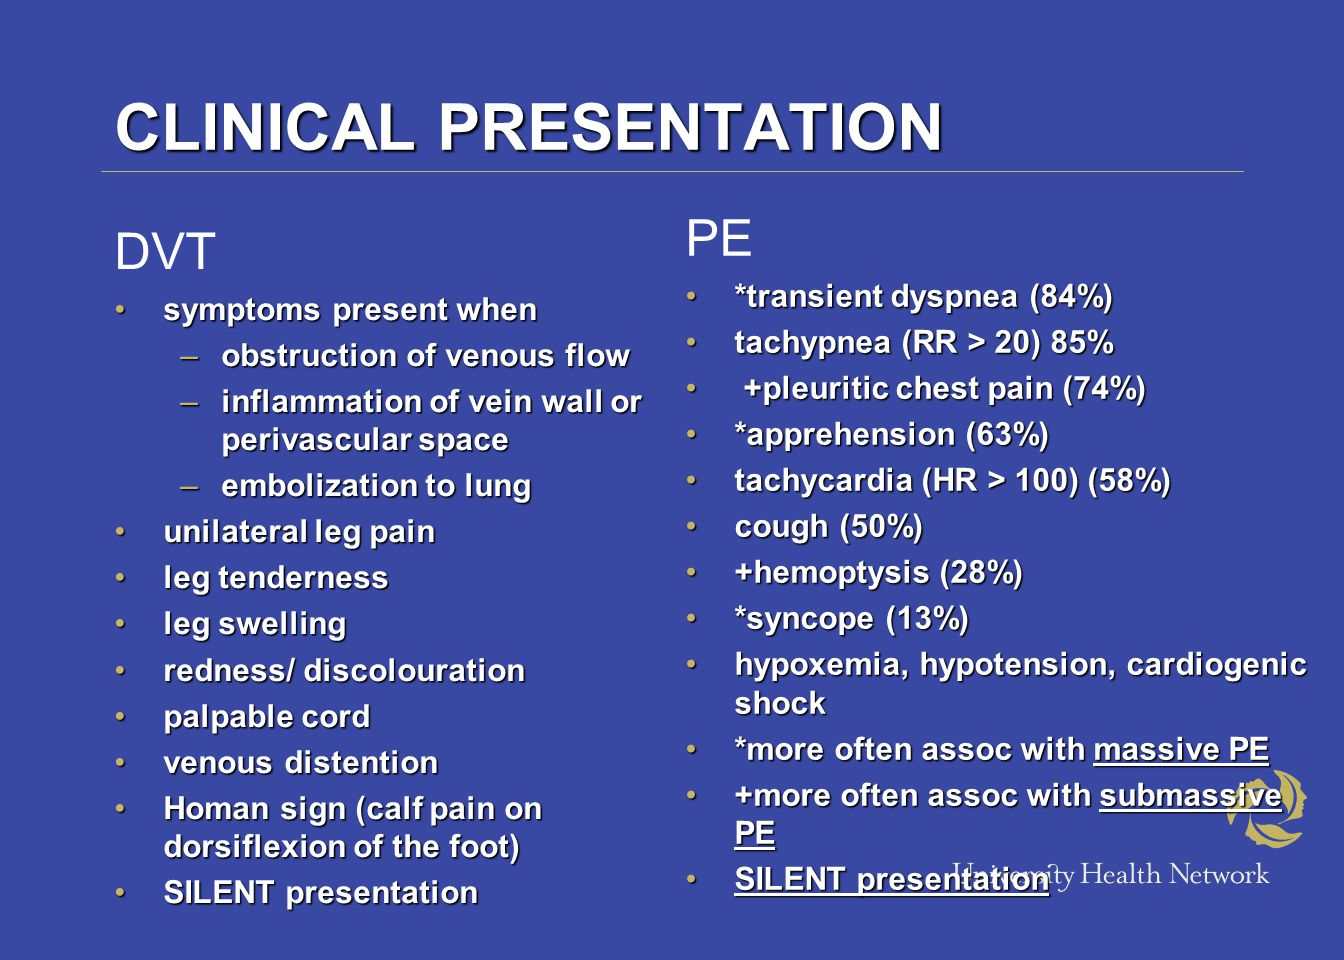 Endpoints: Outcome Assessment VTE endpoints –Venography –Duplex compression ultrasonography –Impedance Plesmography –Fibrinogen Uptake –D-Dimer Testing –PE (lung scanning, angiography, autopsy) Safety endpoints –Major and minor bleeds –Thrombocytopenia Mortality